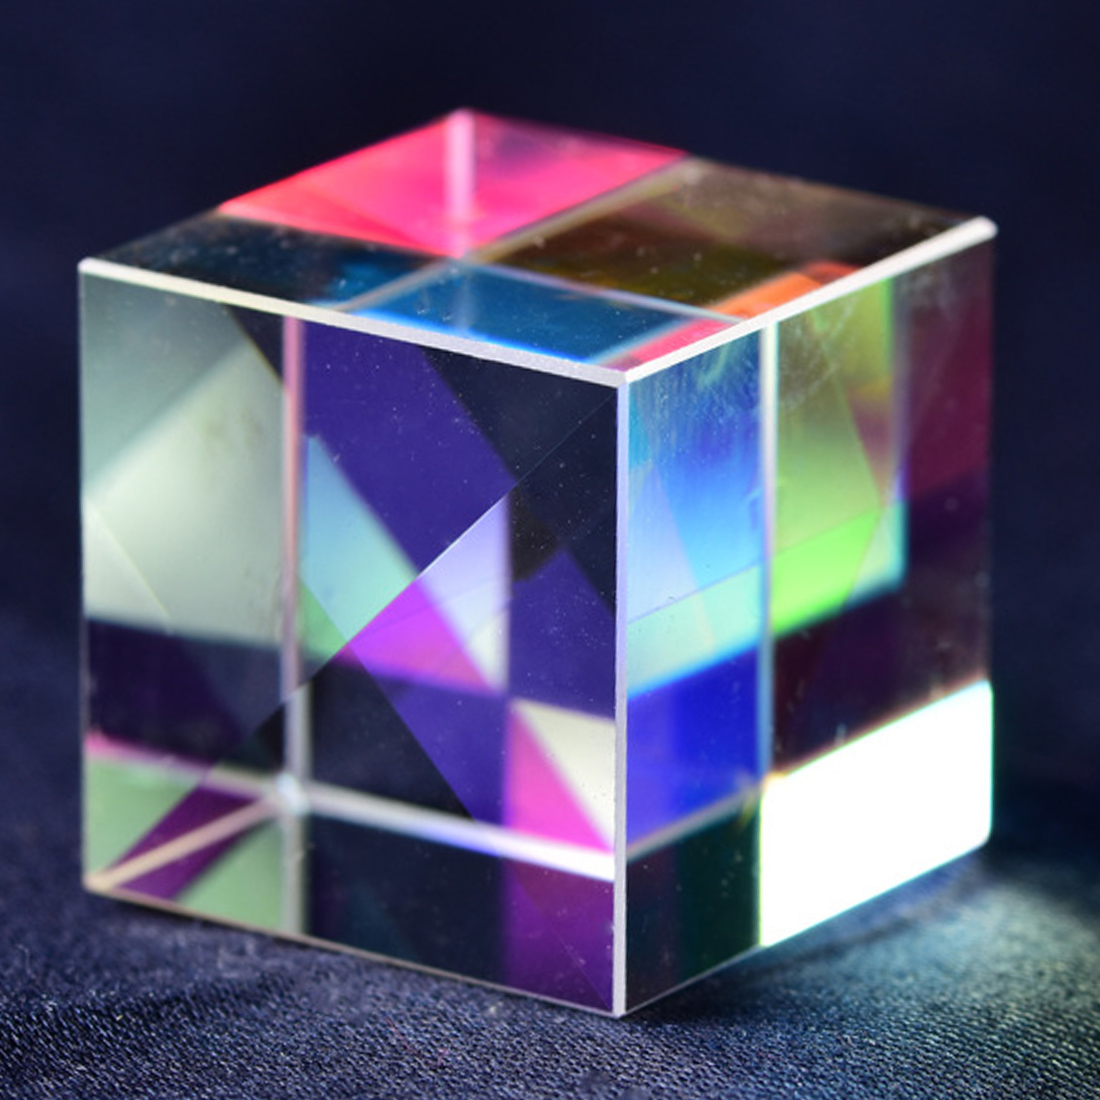 K9 Cube Prism Defective Cross Dichroic Mirror Combiner Splitter Decor Transparent Module Optical Glass Toy 18*18mm